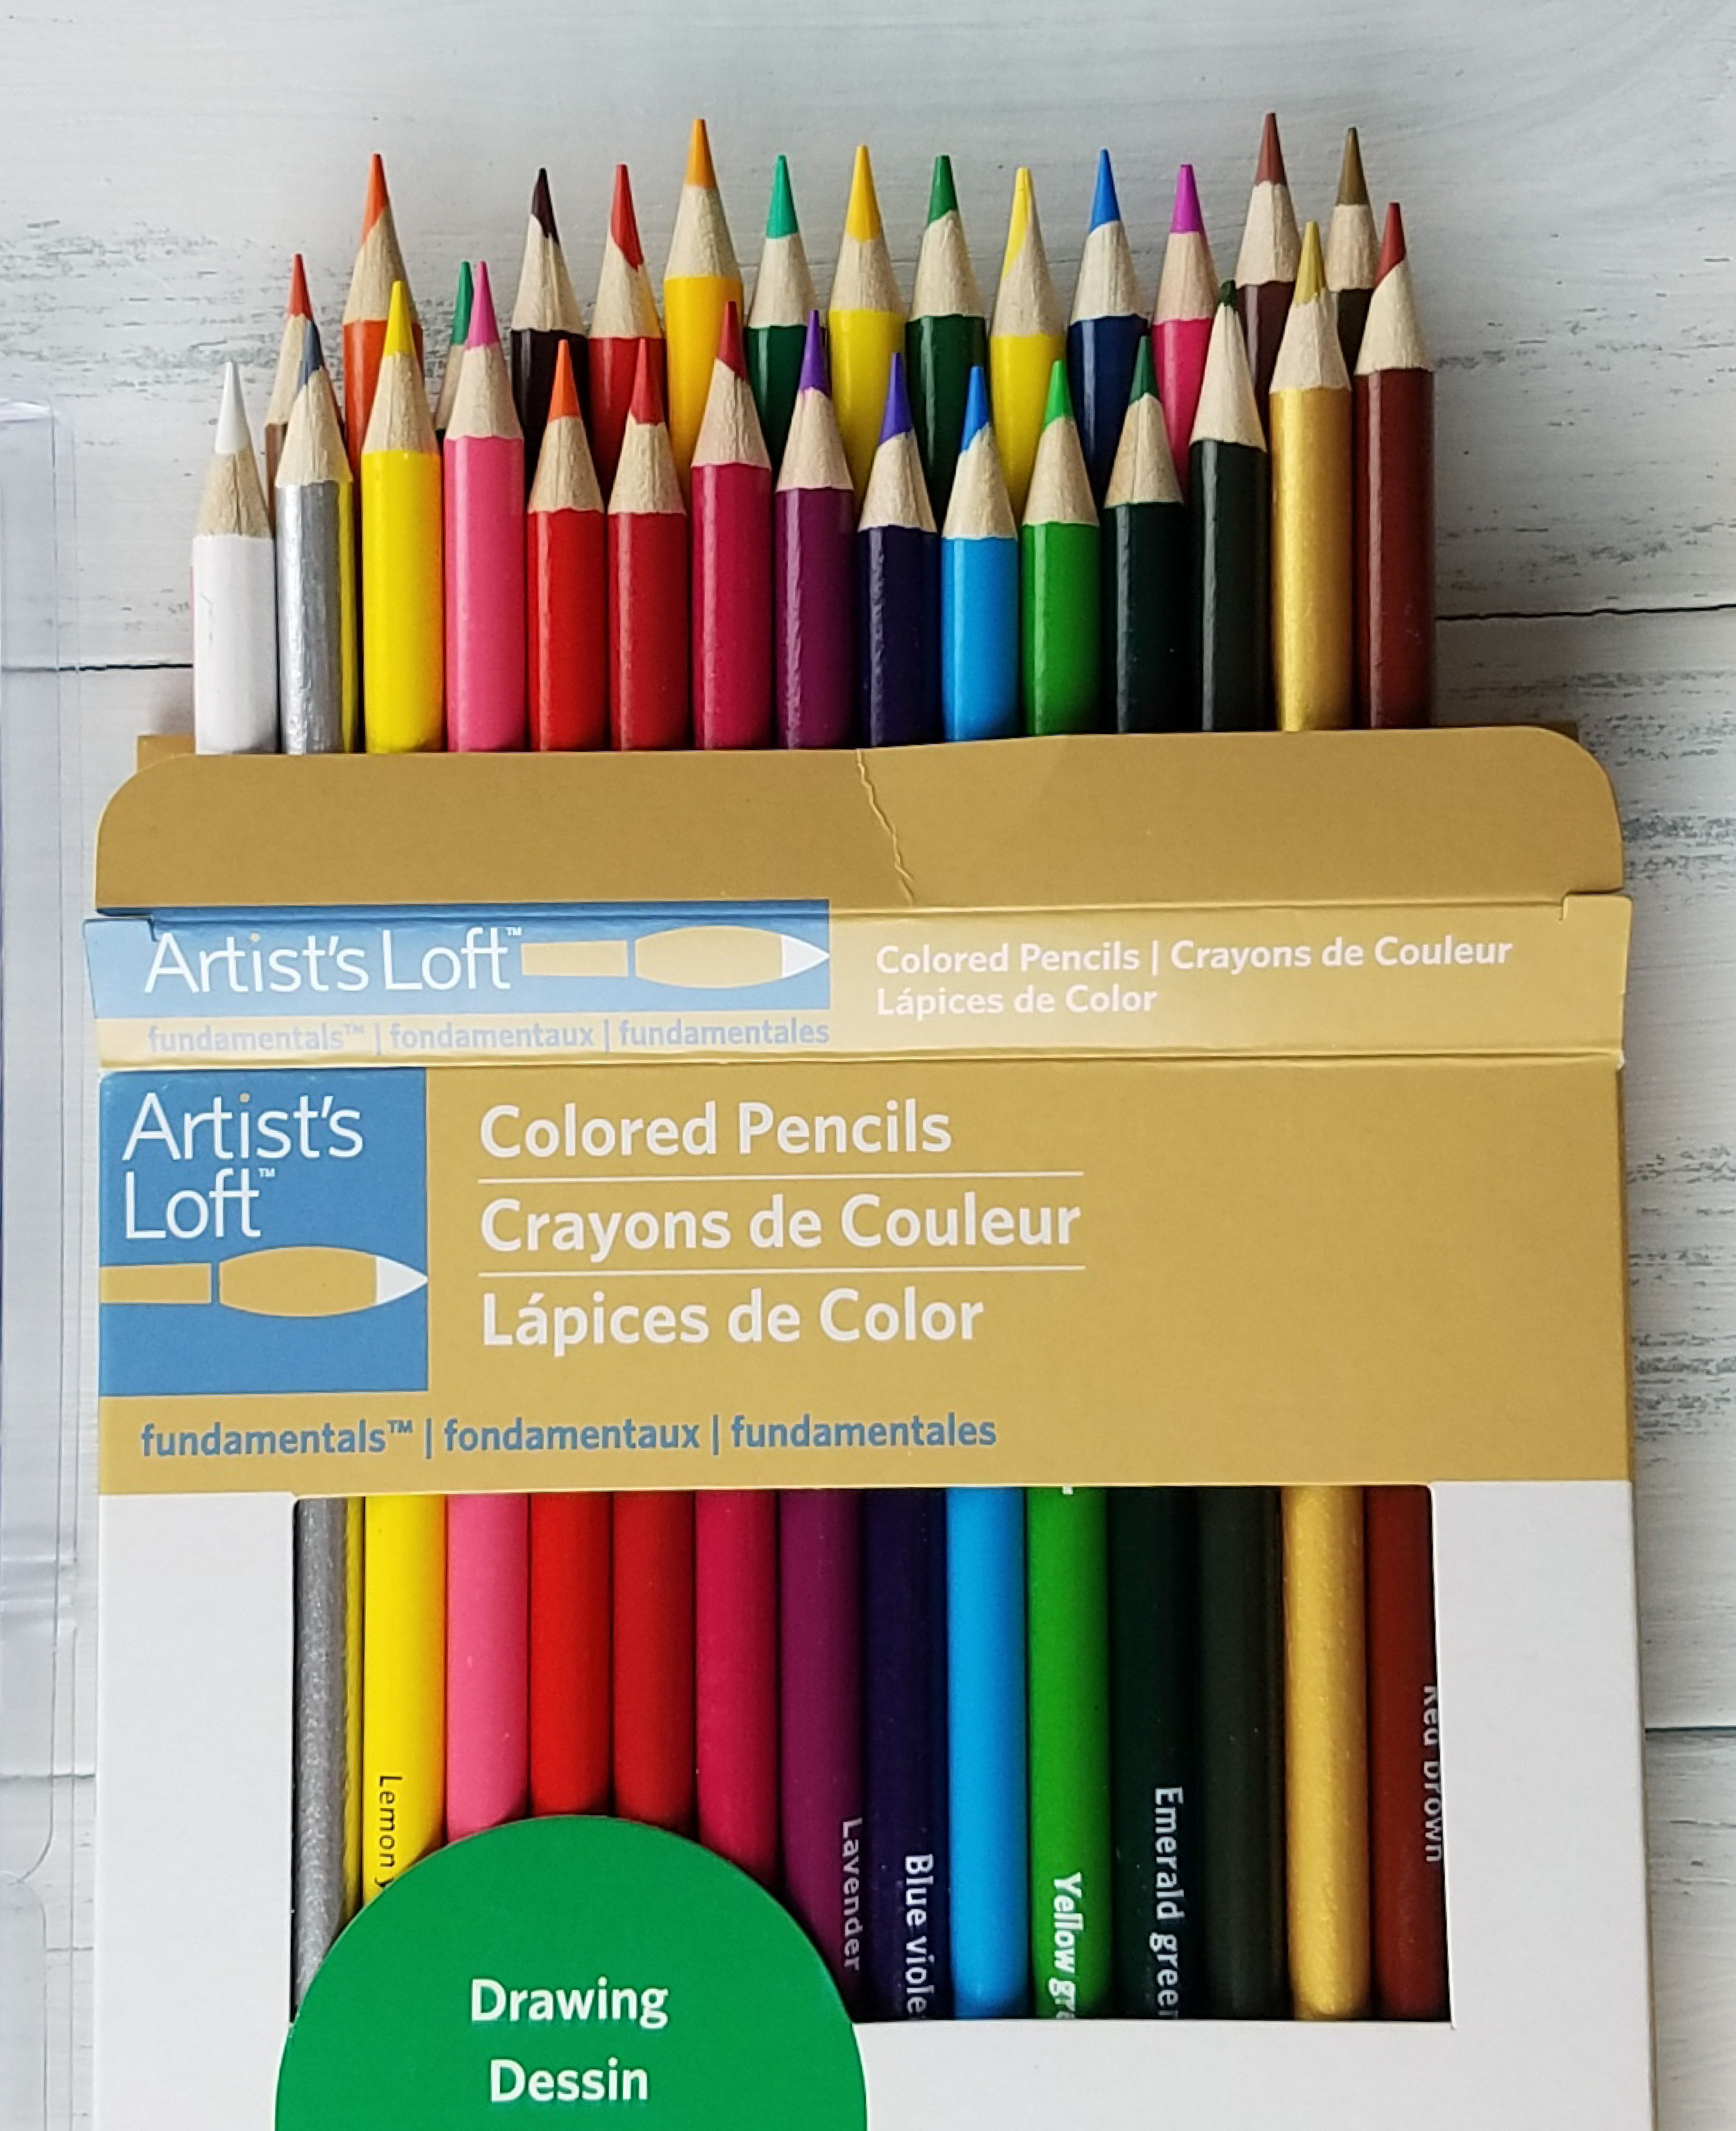 Artist's Loft Colored Pencils